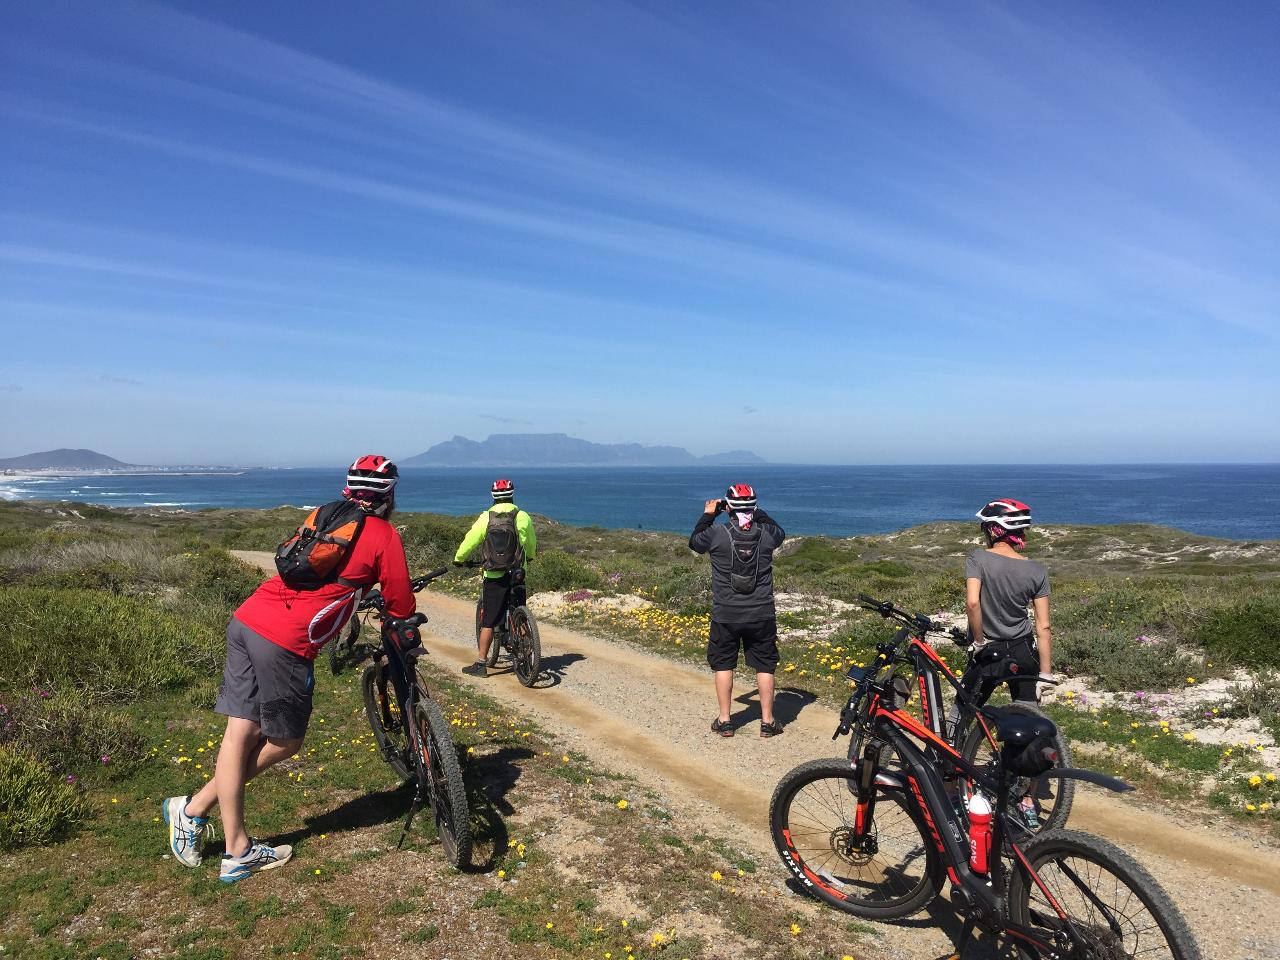 West Coast Wildlife Ebike Tour With Pickup Service